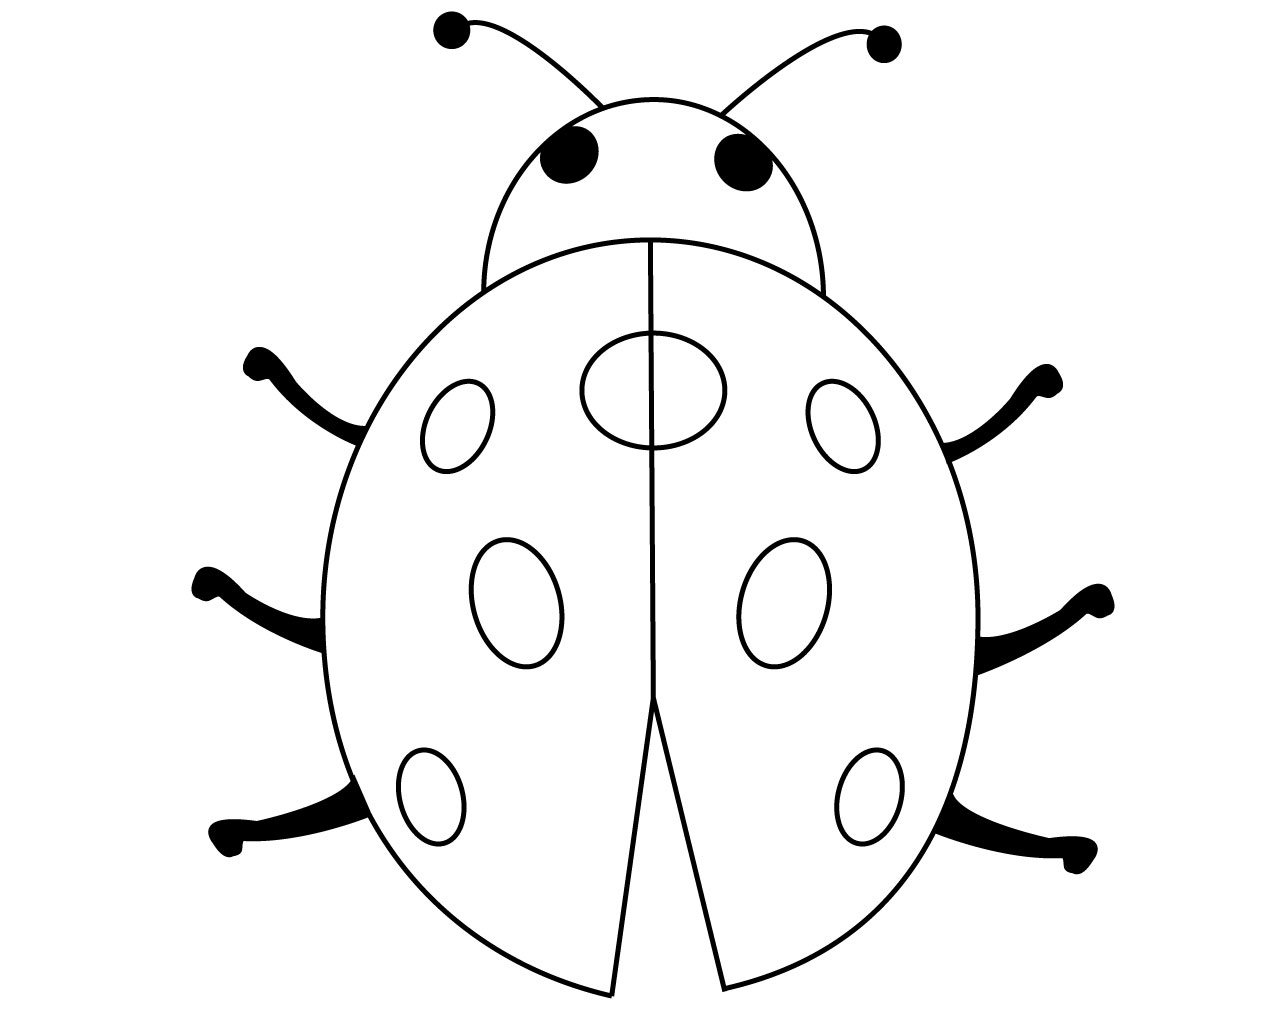 FREE Ladybug Coloring Pages to Print Out and Color! | 1024x1280